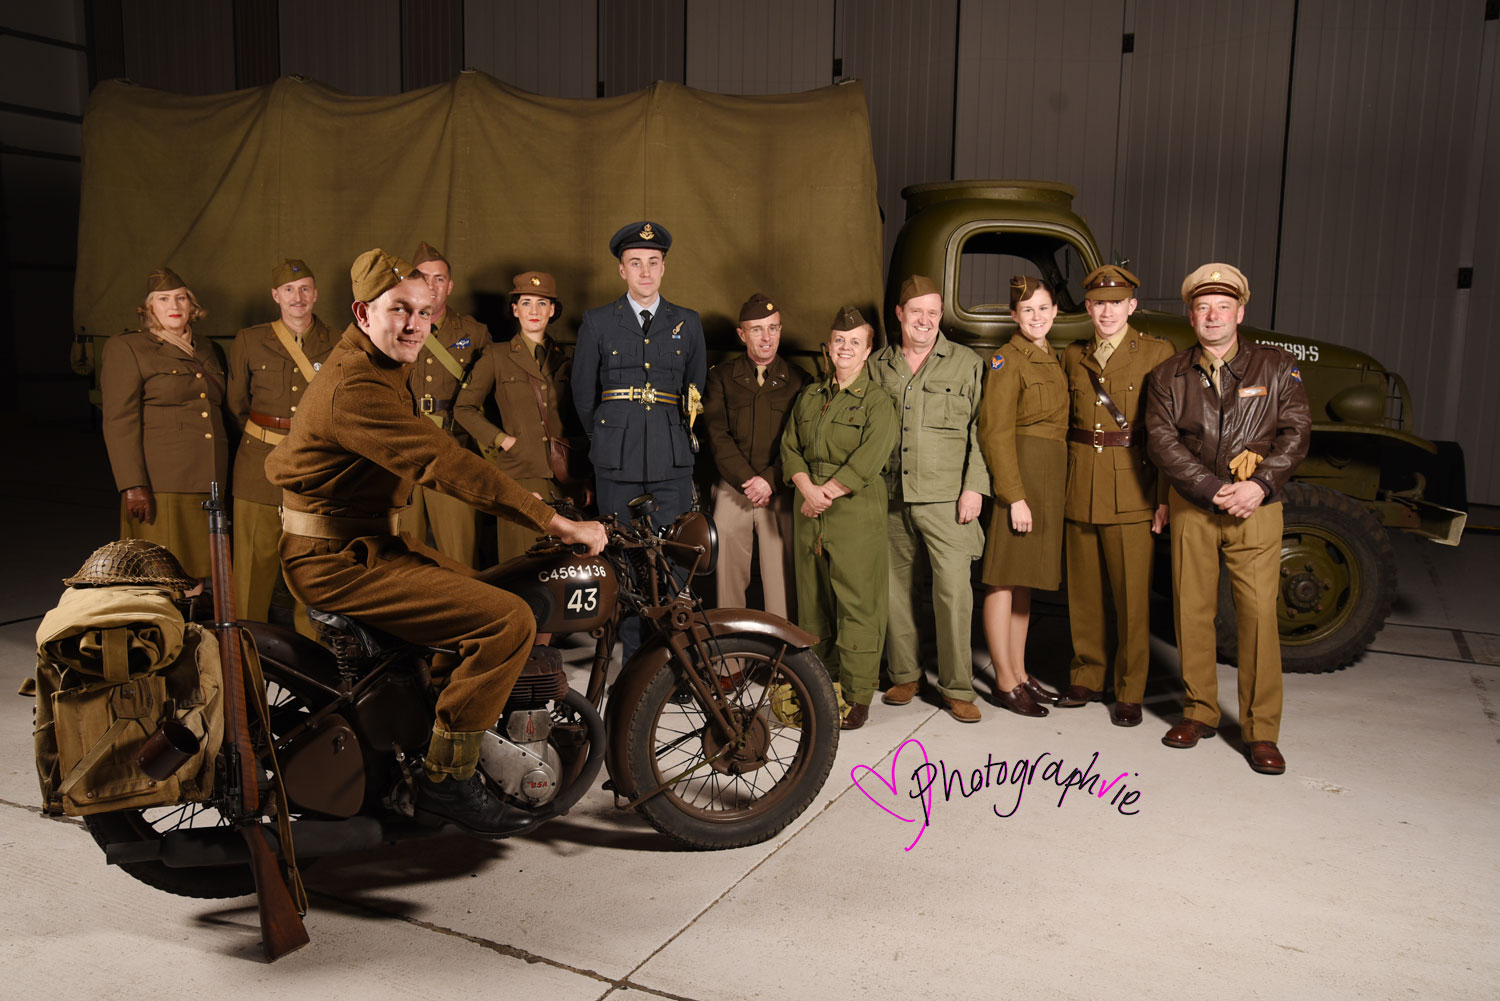 Imperial-War-Museum-House-of-Cambridge-Event-40s-Dressing-Up-Pin-up-Photobooth-and-Photos-by-Photographvie-Ely--(1).jpg